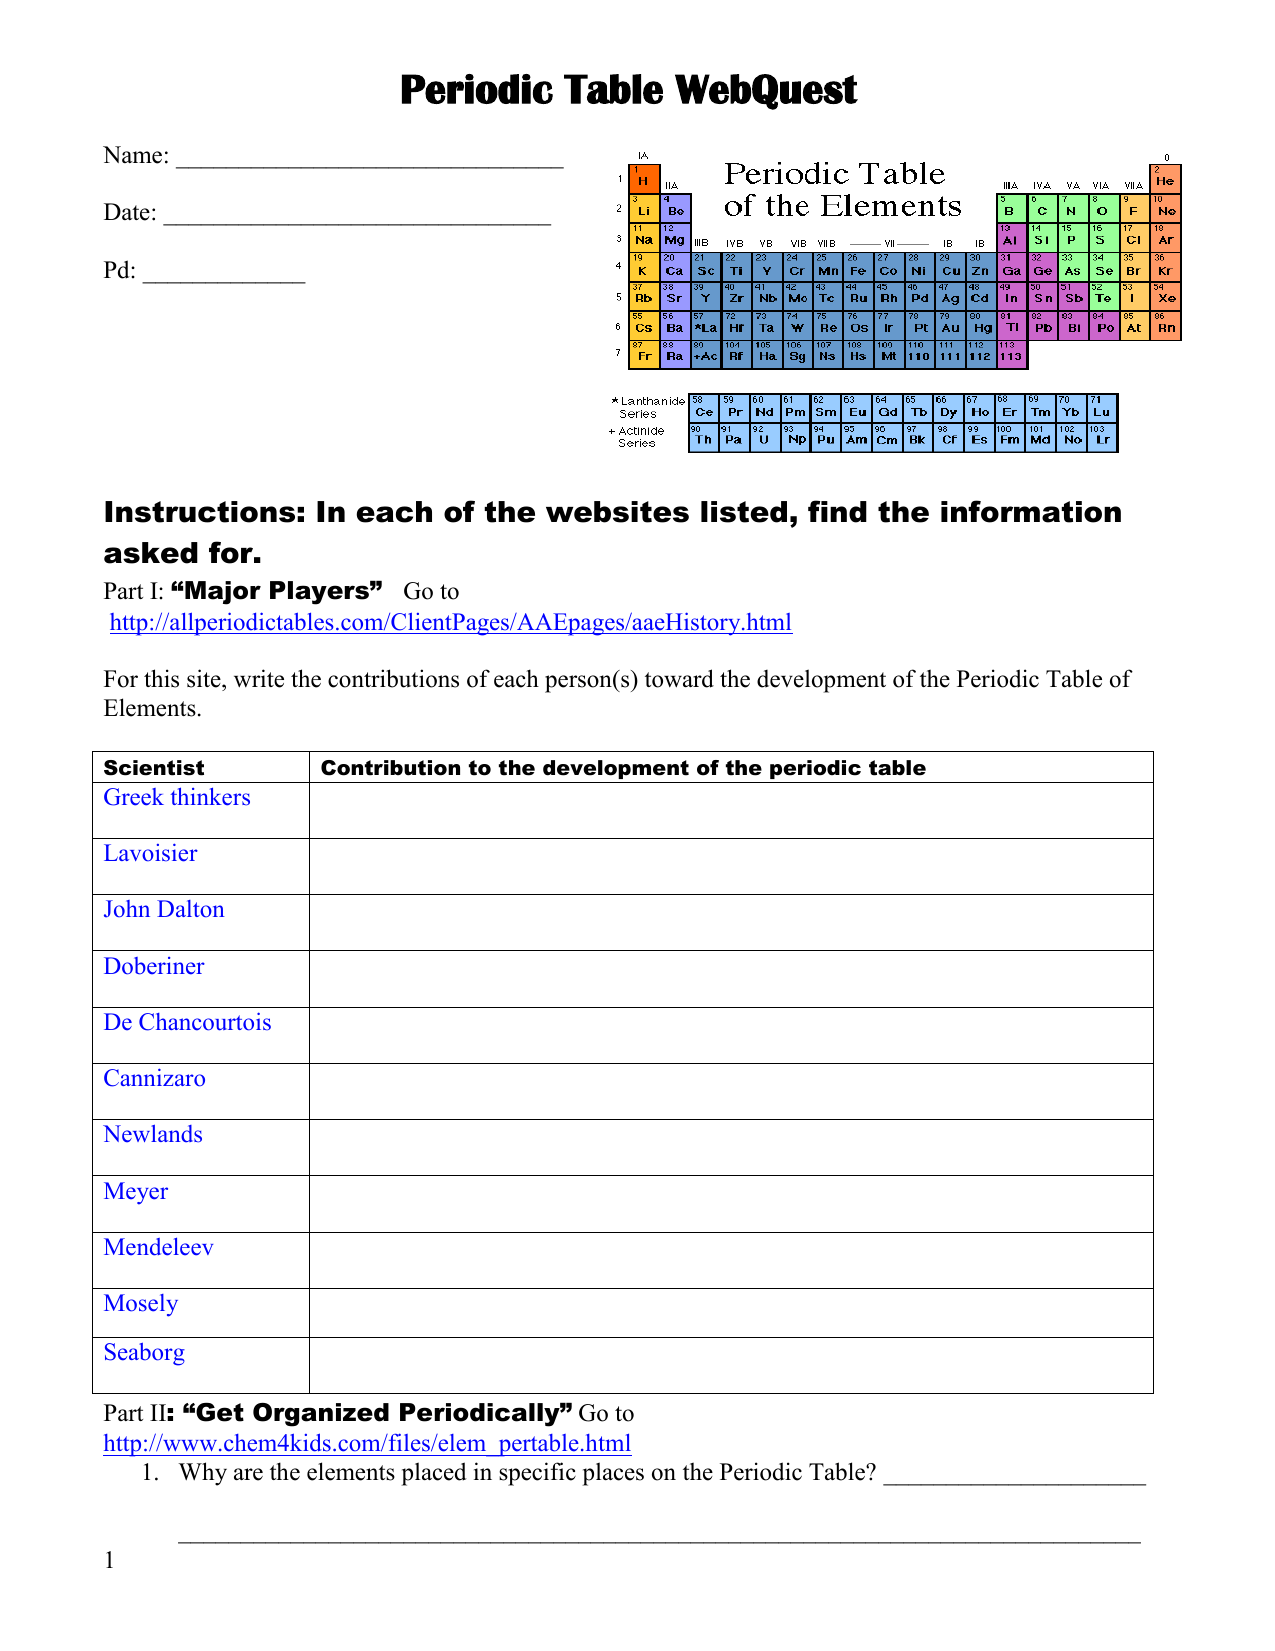 Periodic Table Webquest Answer Key Part 3